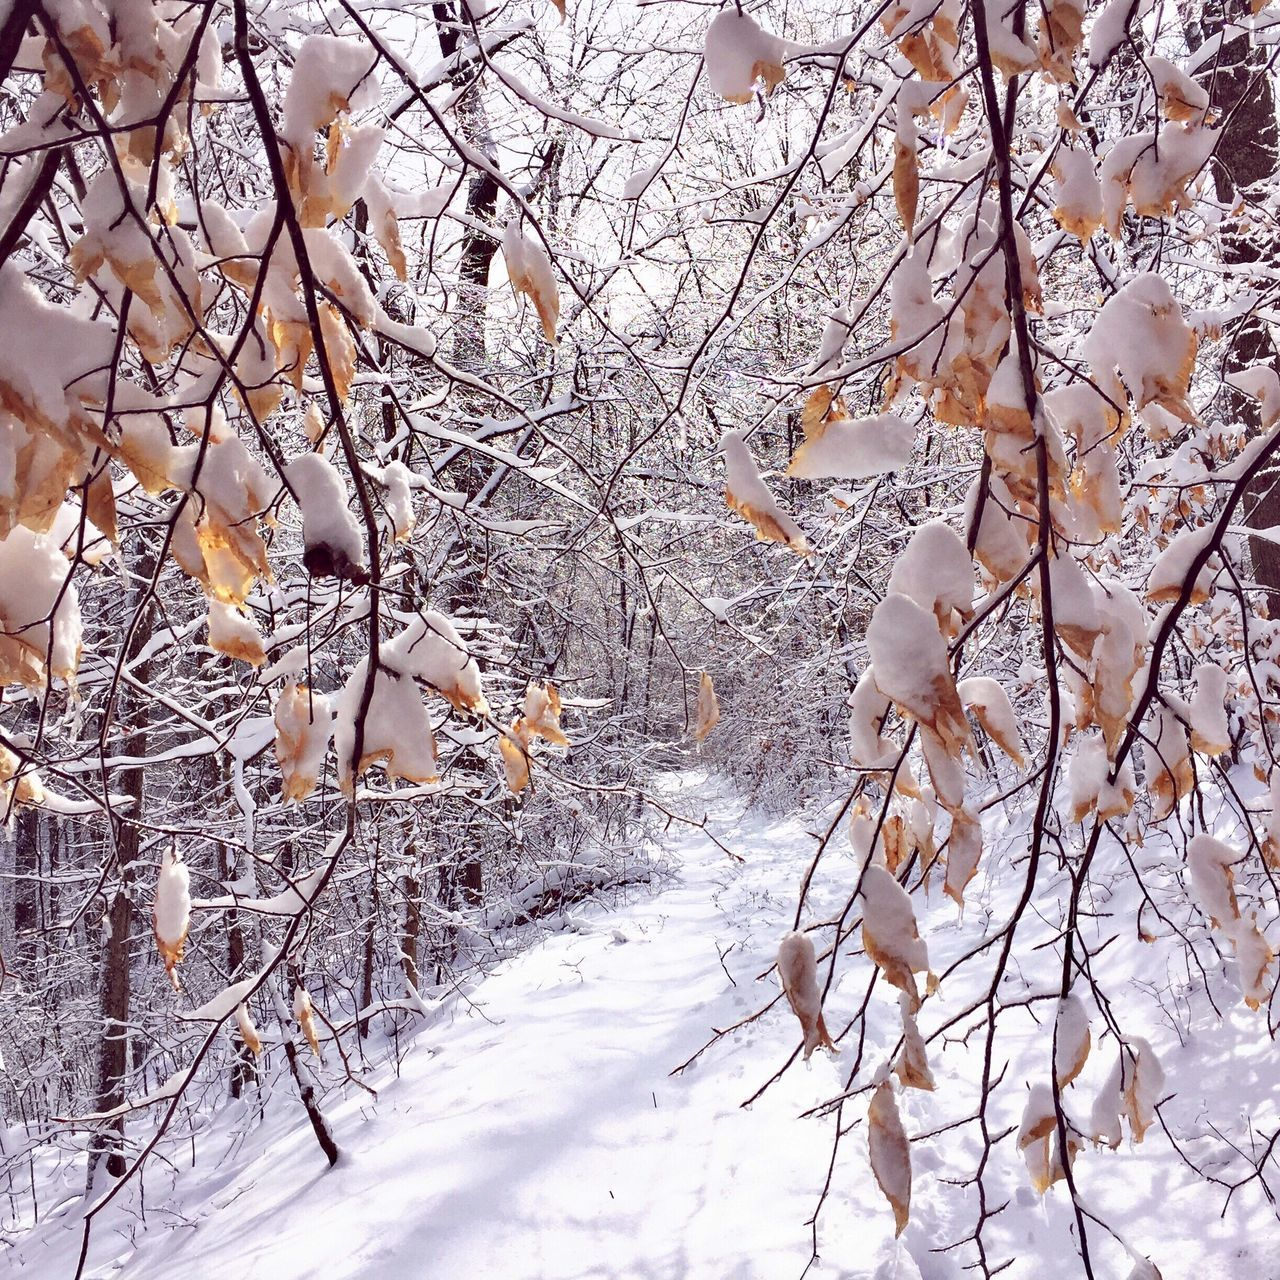 Snow Ice Winter Cold Temperature Beauty In Nature Nature Weather Tree No People Outdoors Branch Day Forest Forest Path Traveling Home For The Holidays EyeEm Best Shots Walk This Way Magic Moments Landscape Scenics Tranquility Tranquil Scene